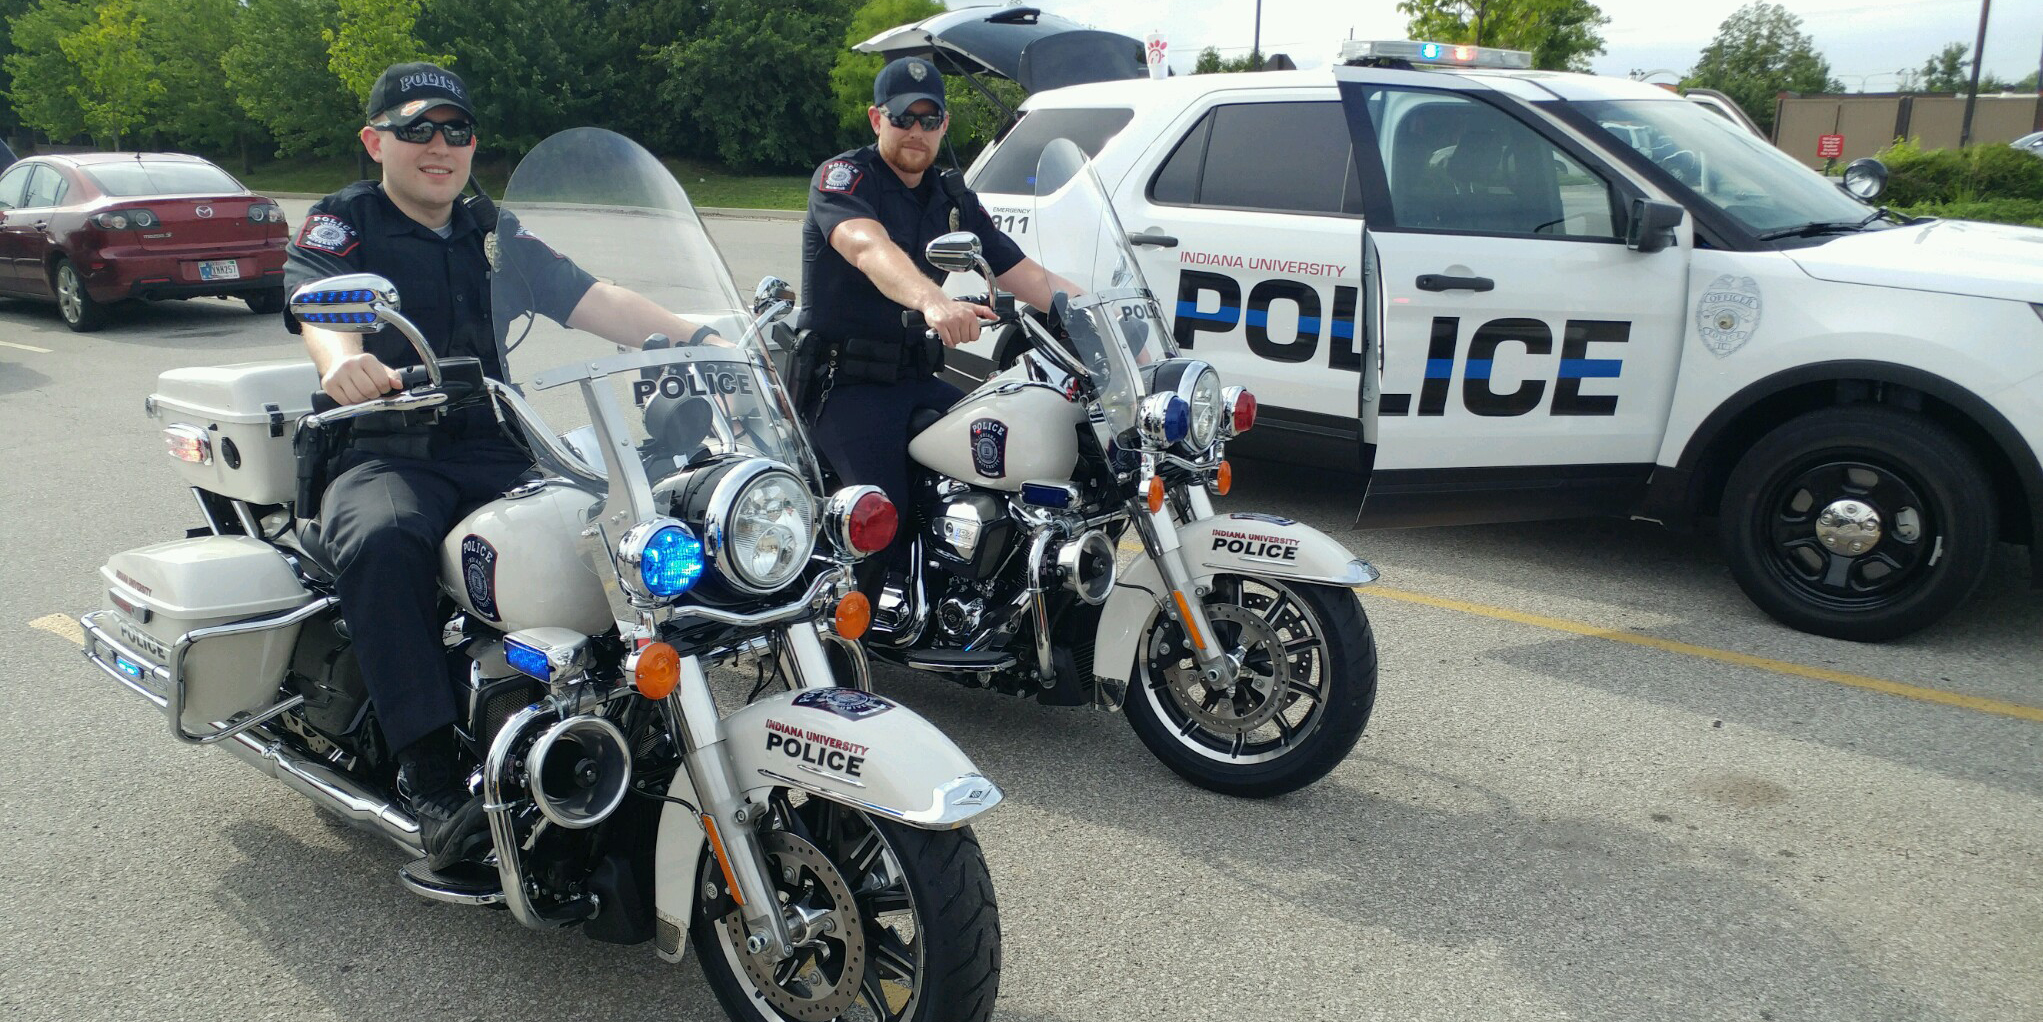 Indiana university police begin motorcycle patrols on for Bureau of motor vehicles bloomington indiana